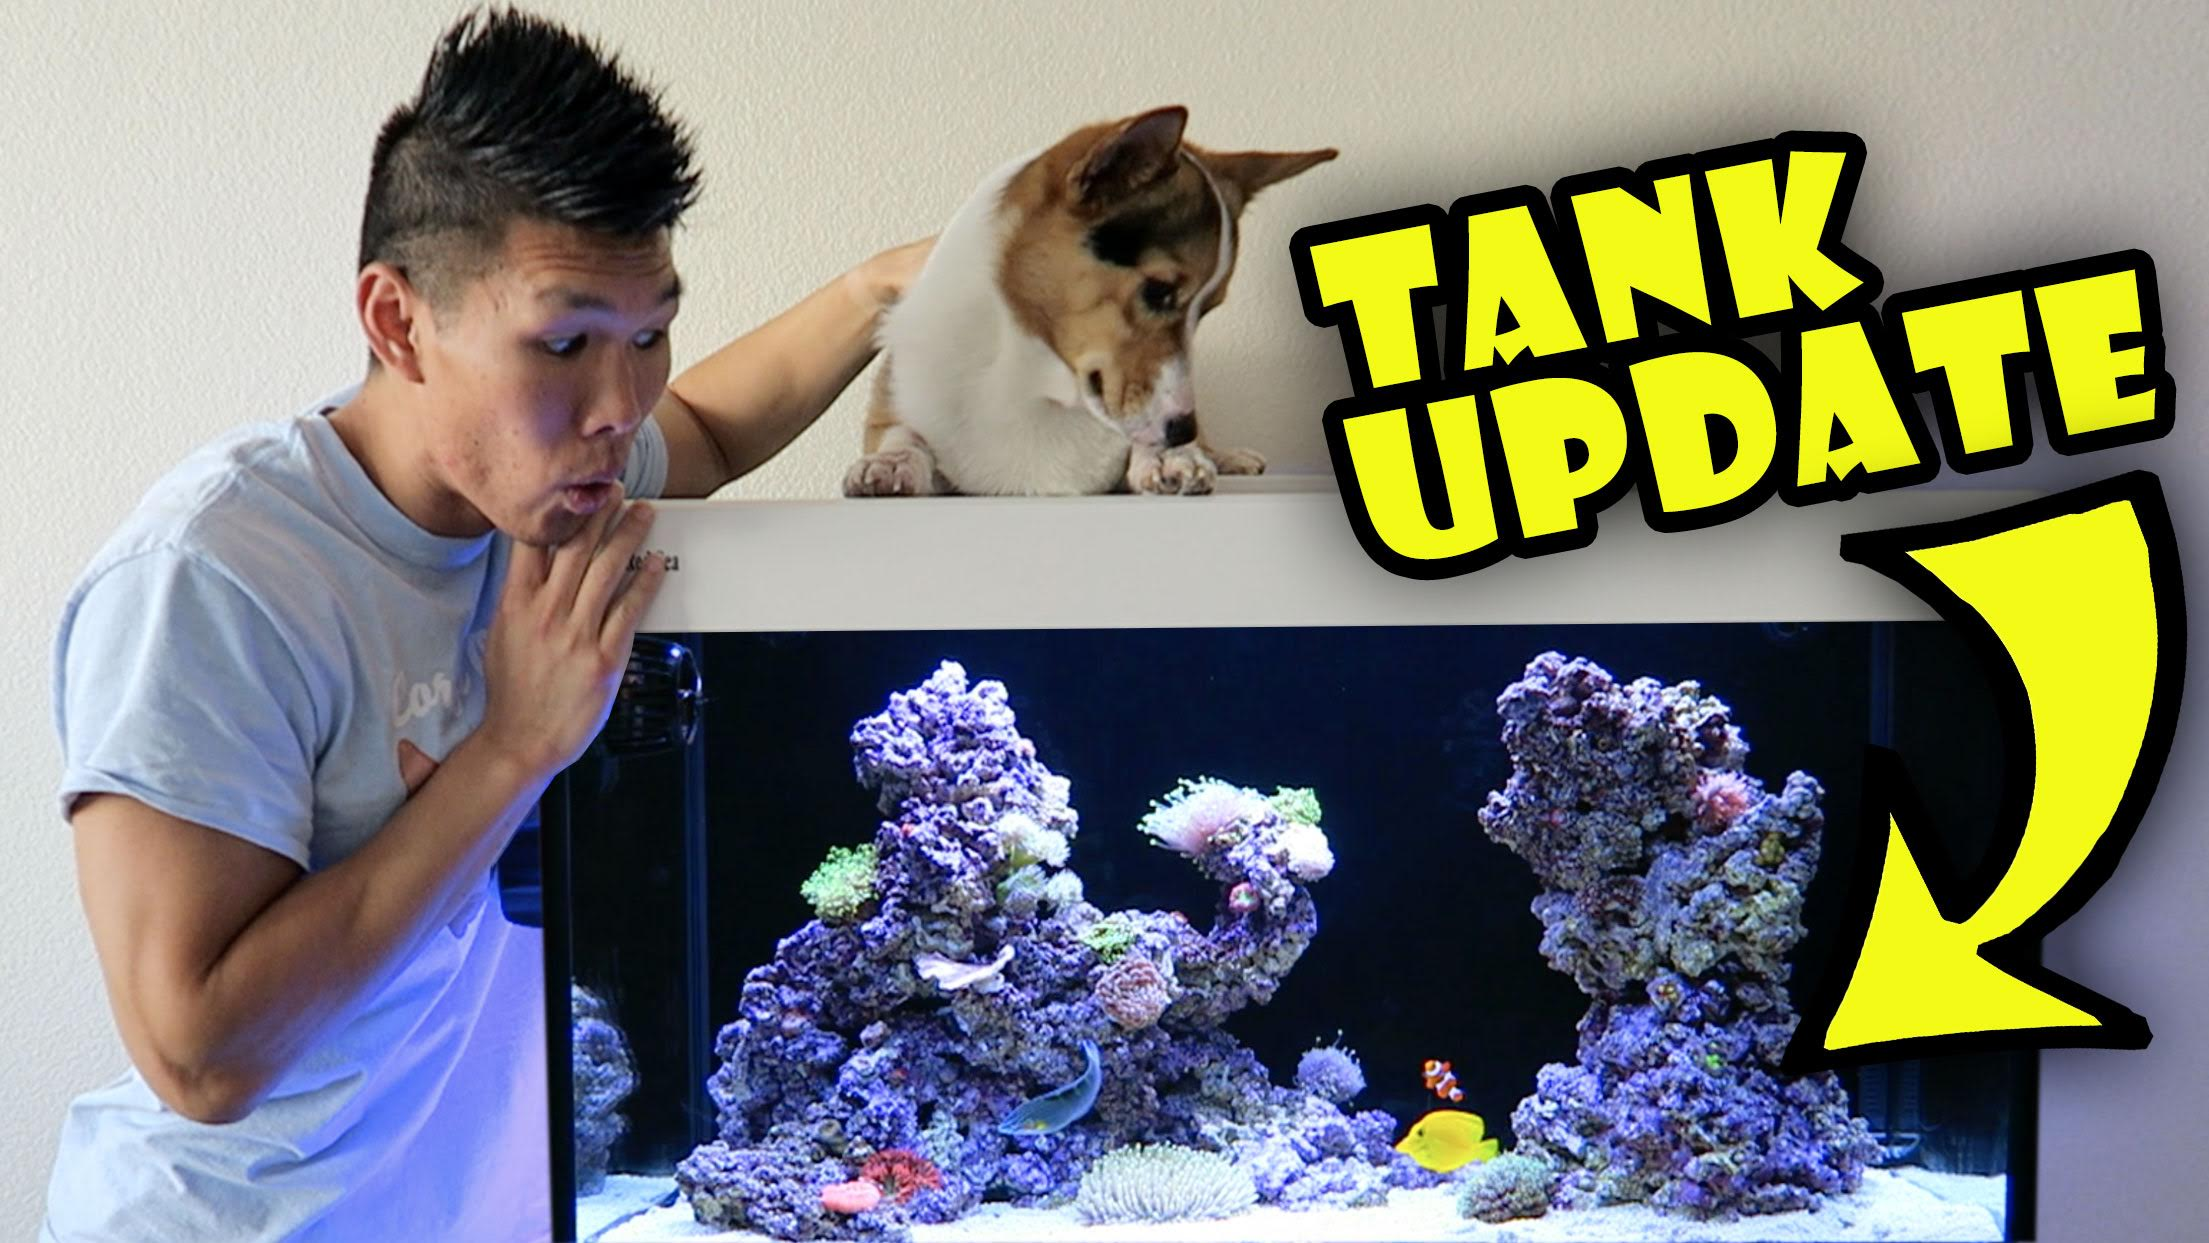 Fish aquarium jobs - What S An Unreal Fish Tank Setup Look